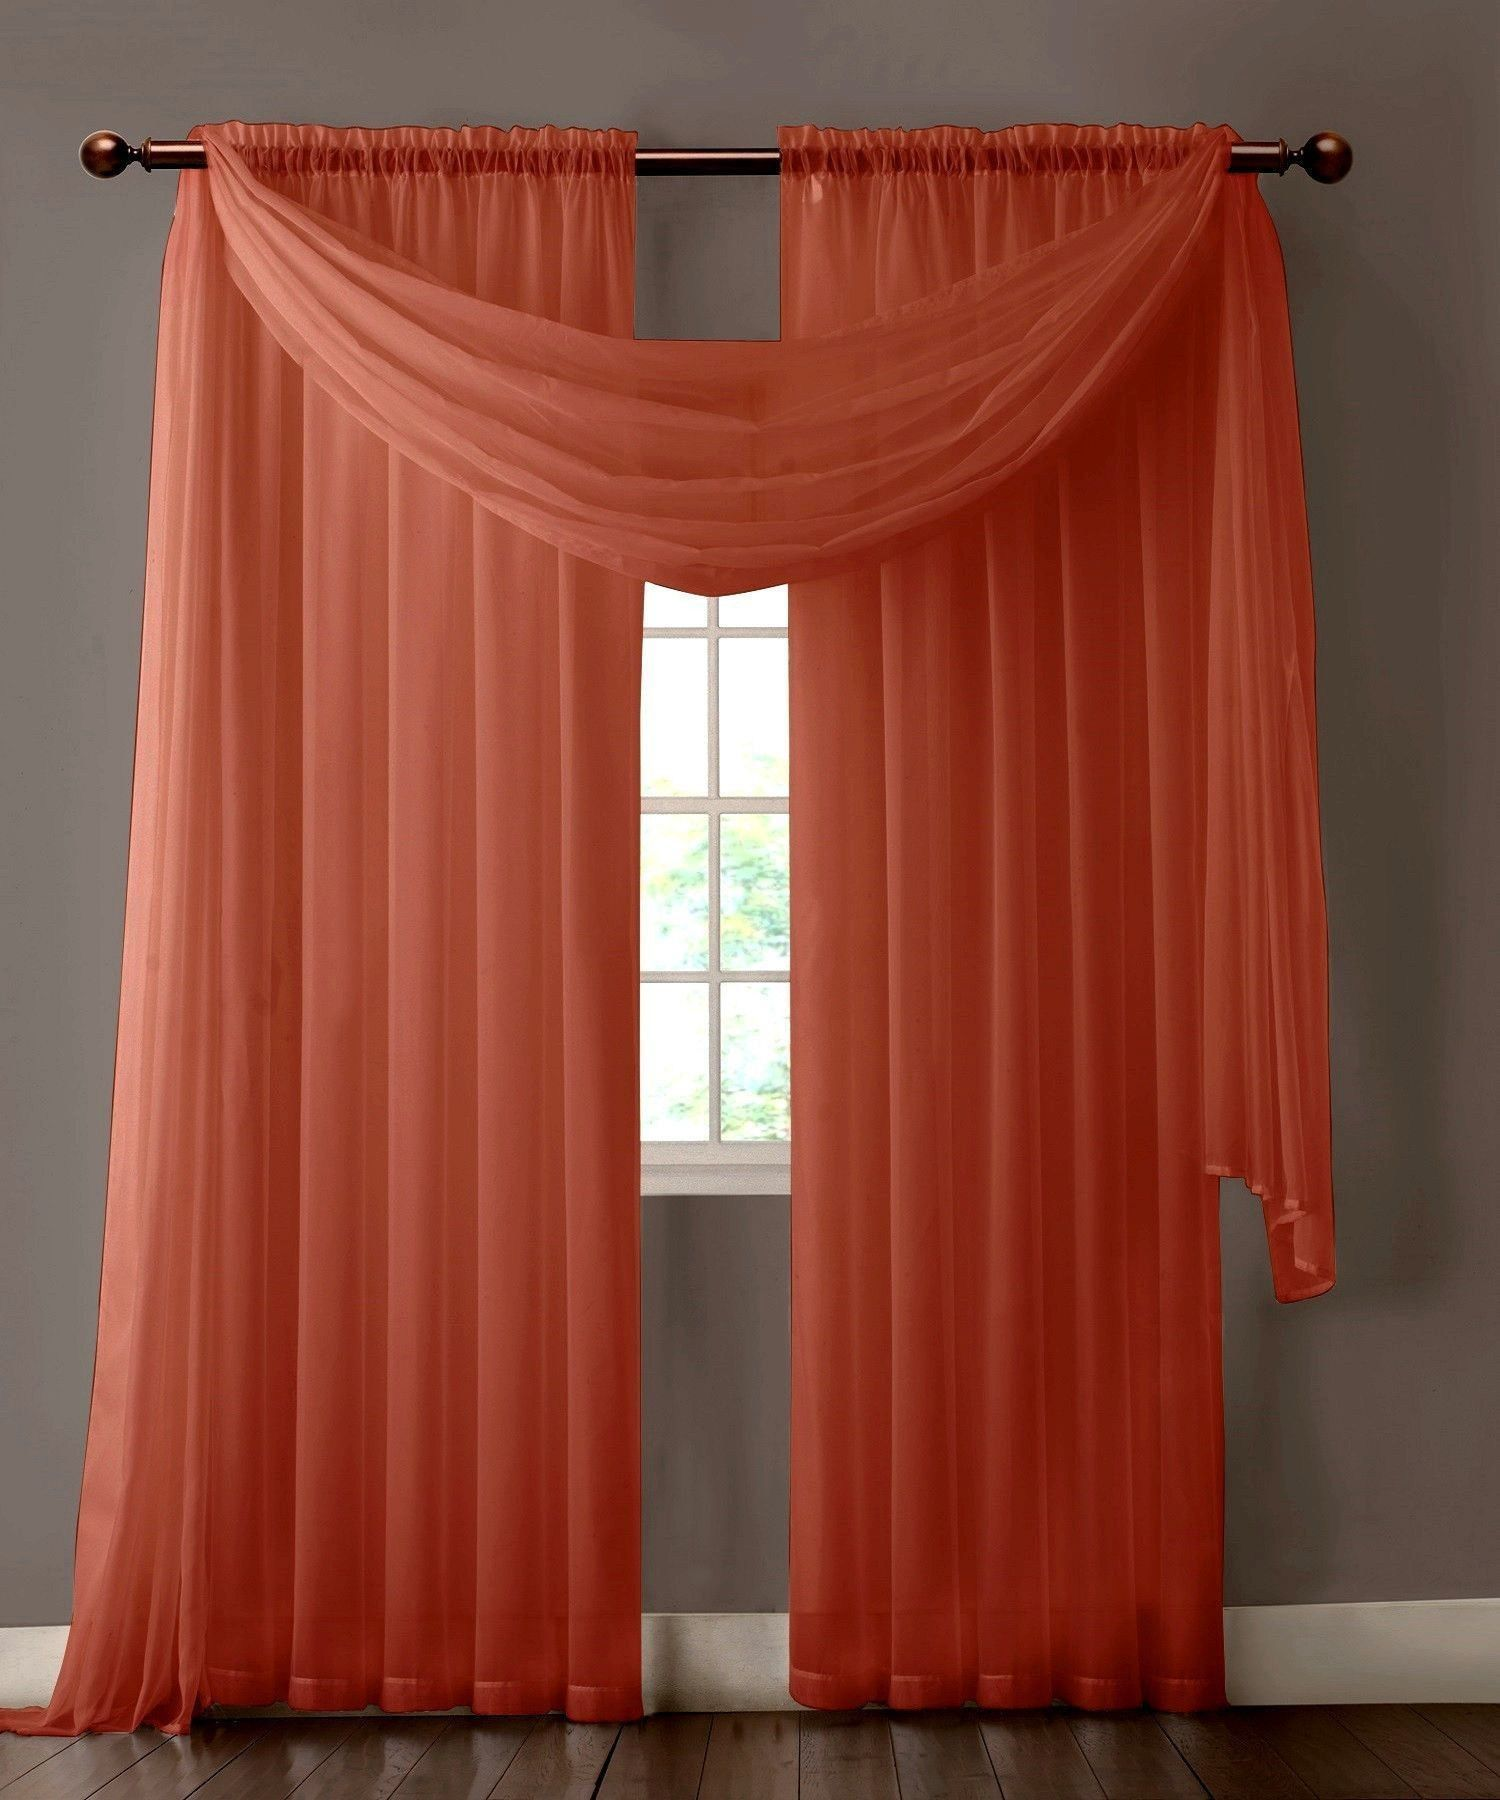 Best of orange and white curtains curtainsideasvalance bedroomcurtainsbaywindow